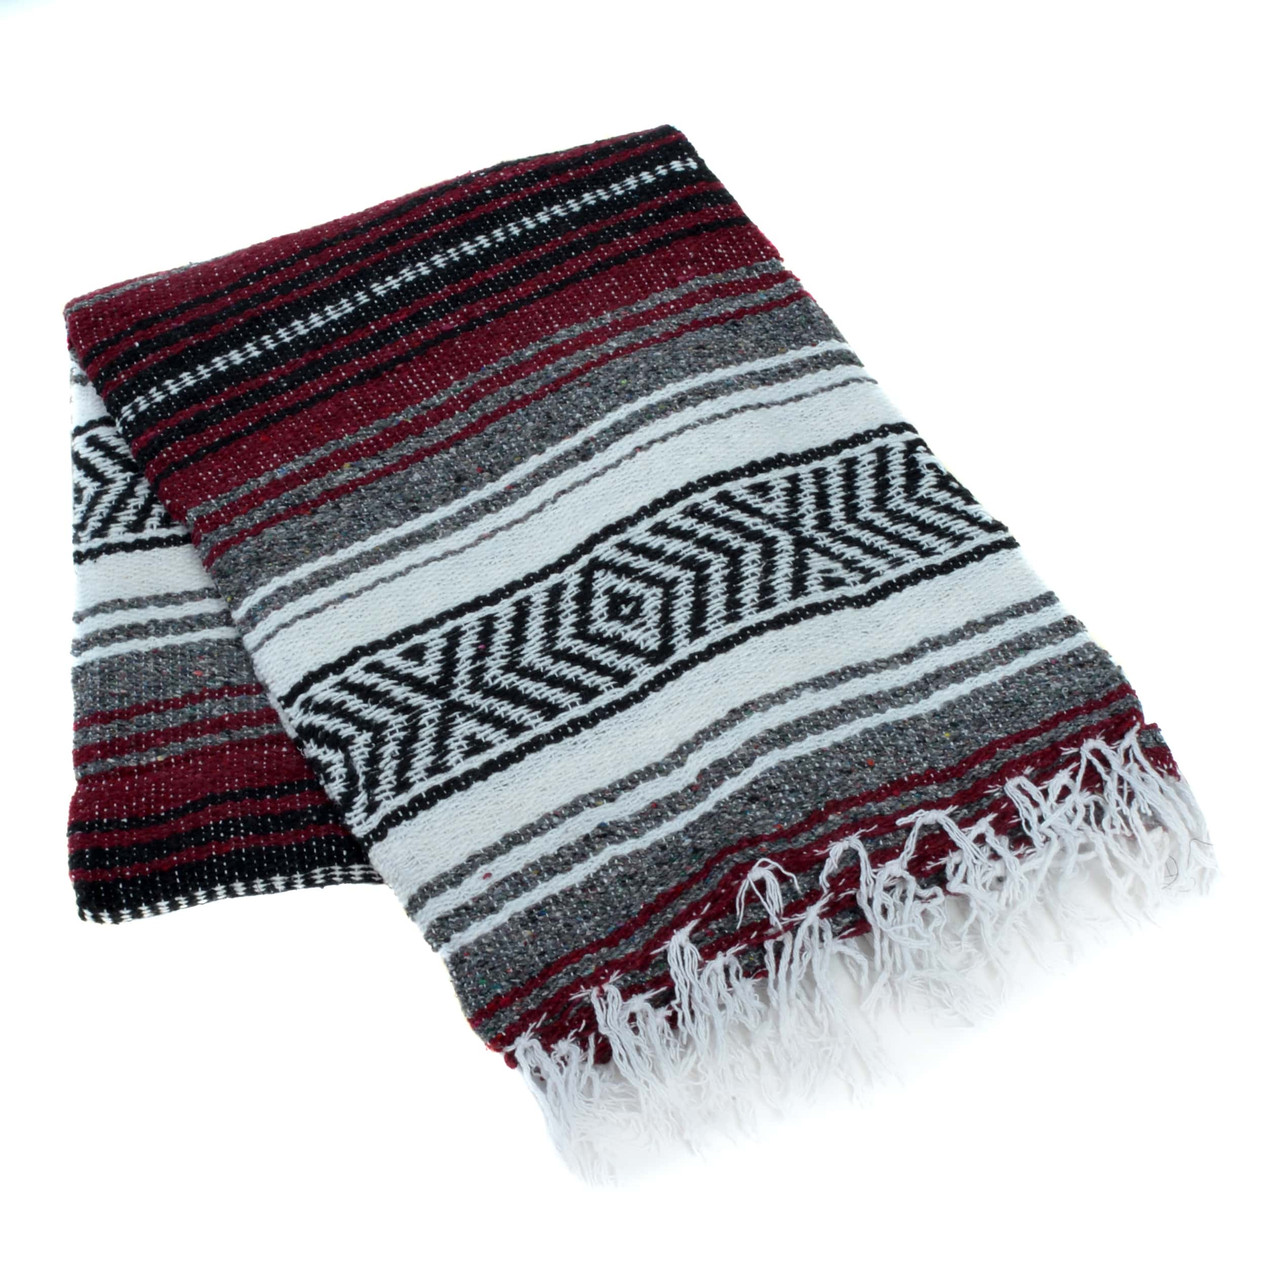 Collectibles Cultures Ethnicities Latin American Blankets Rugs Textiles Large Burgundy Hand Woven Mexican Blanket Solid Color Yoga Mat Authentic New Zsco Iq